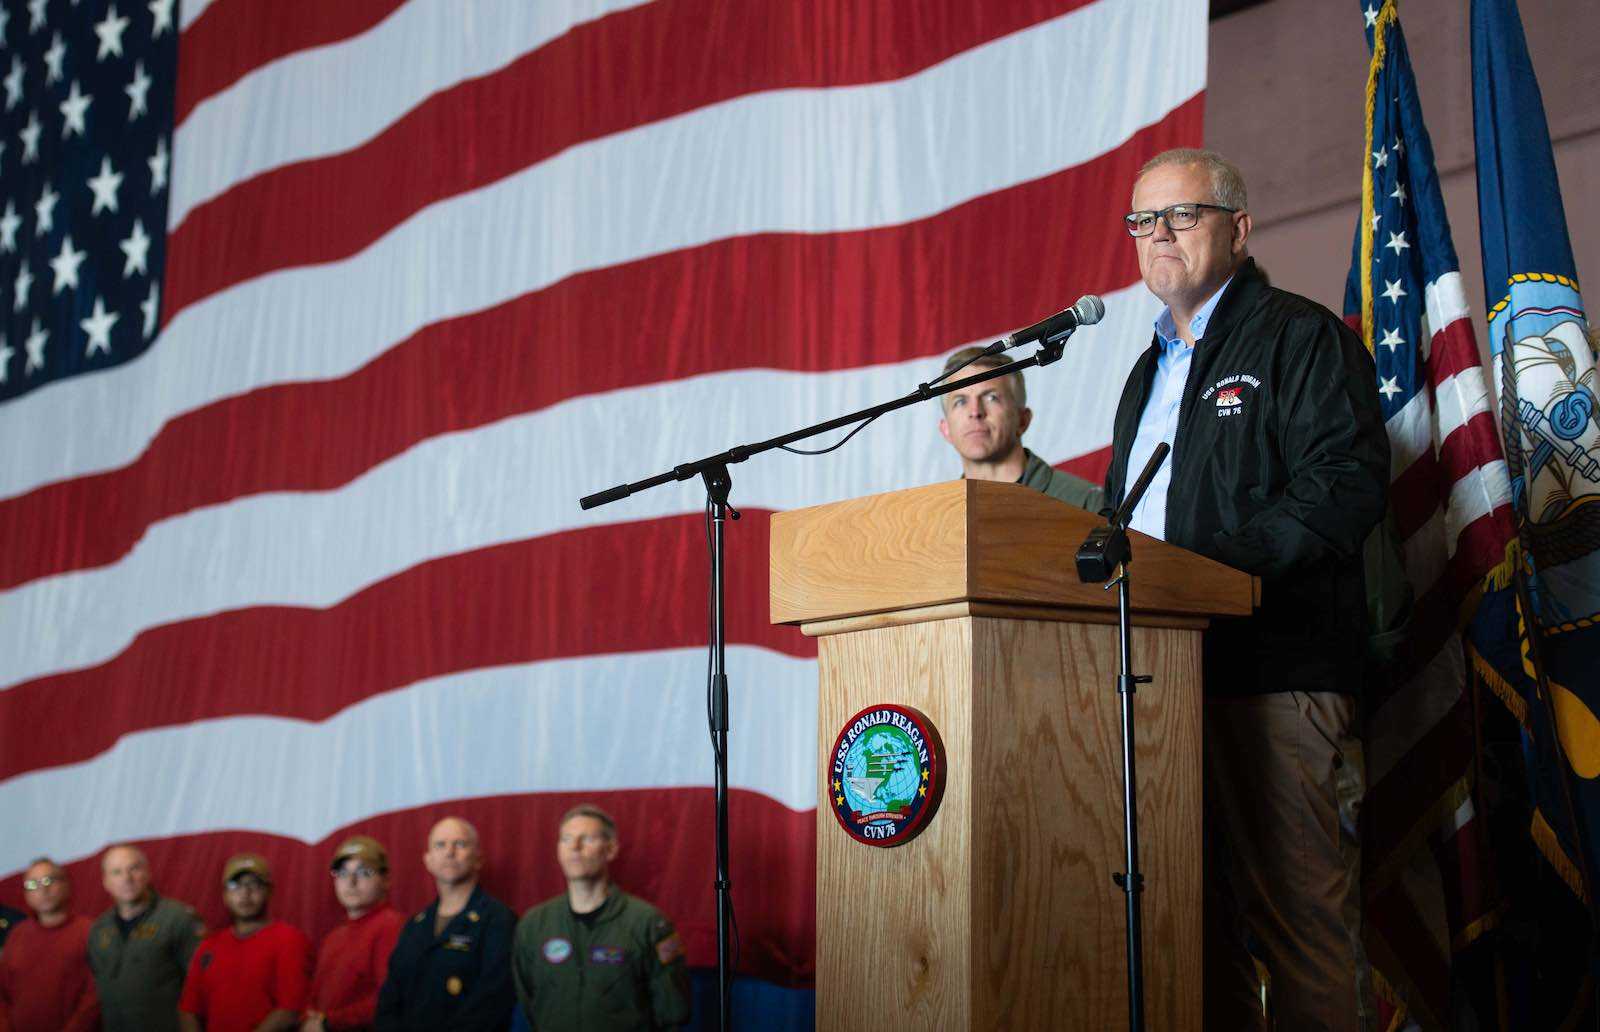 Prime Minister Scott Morrison addresses sailors aboard the aircraft carrier USS Ronald Reagan in July (Photo: Official US Navy Page/Flickr)